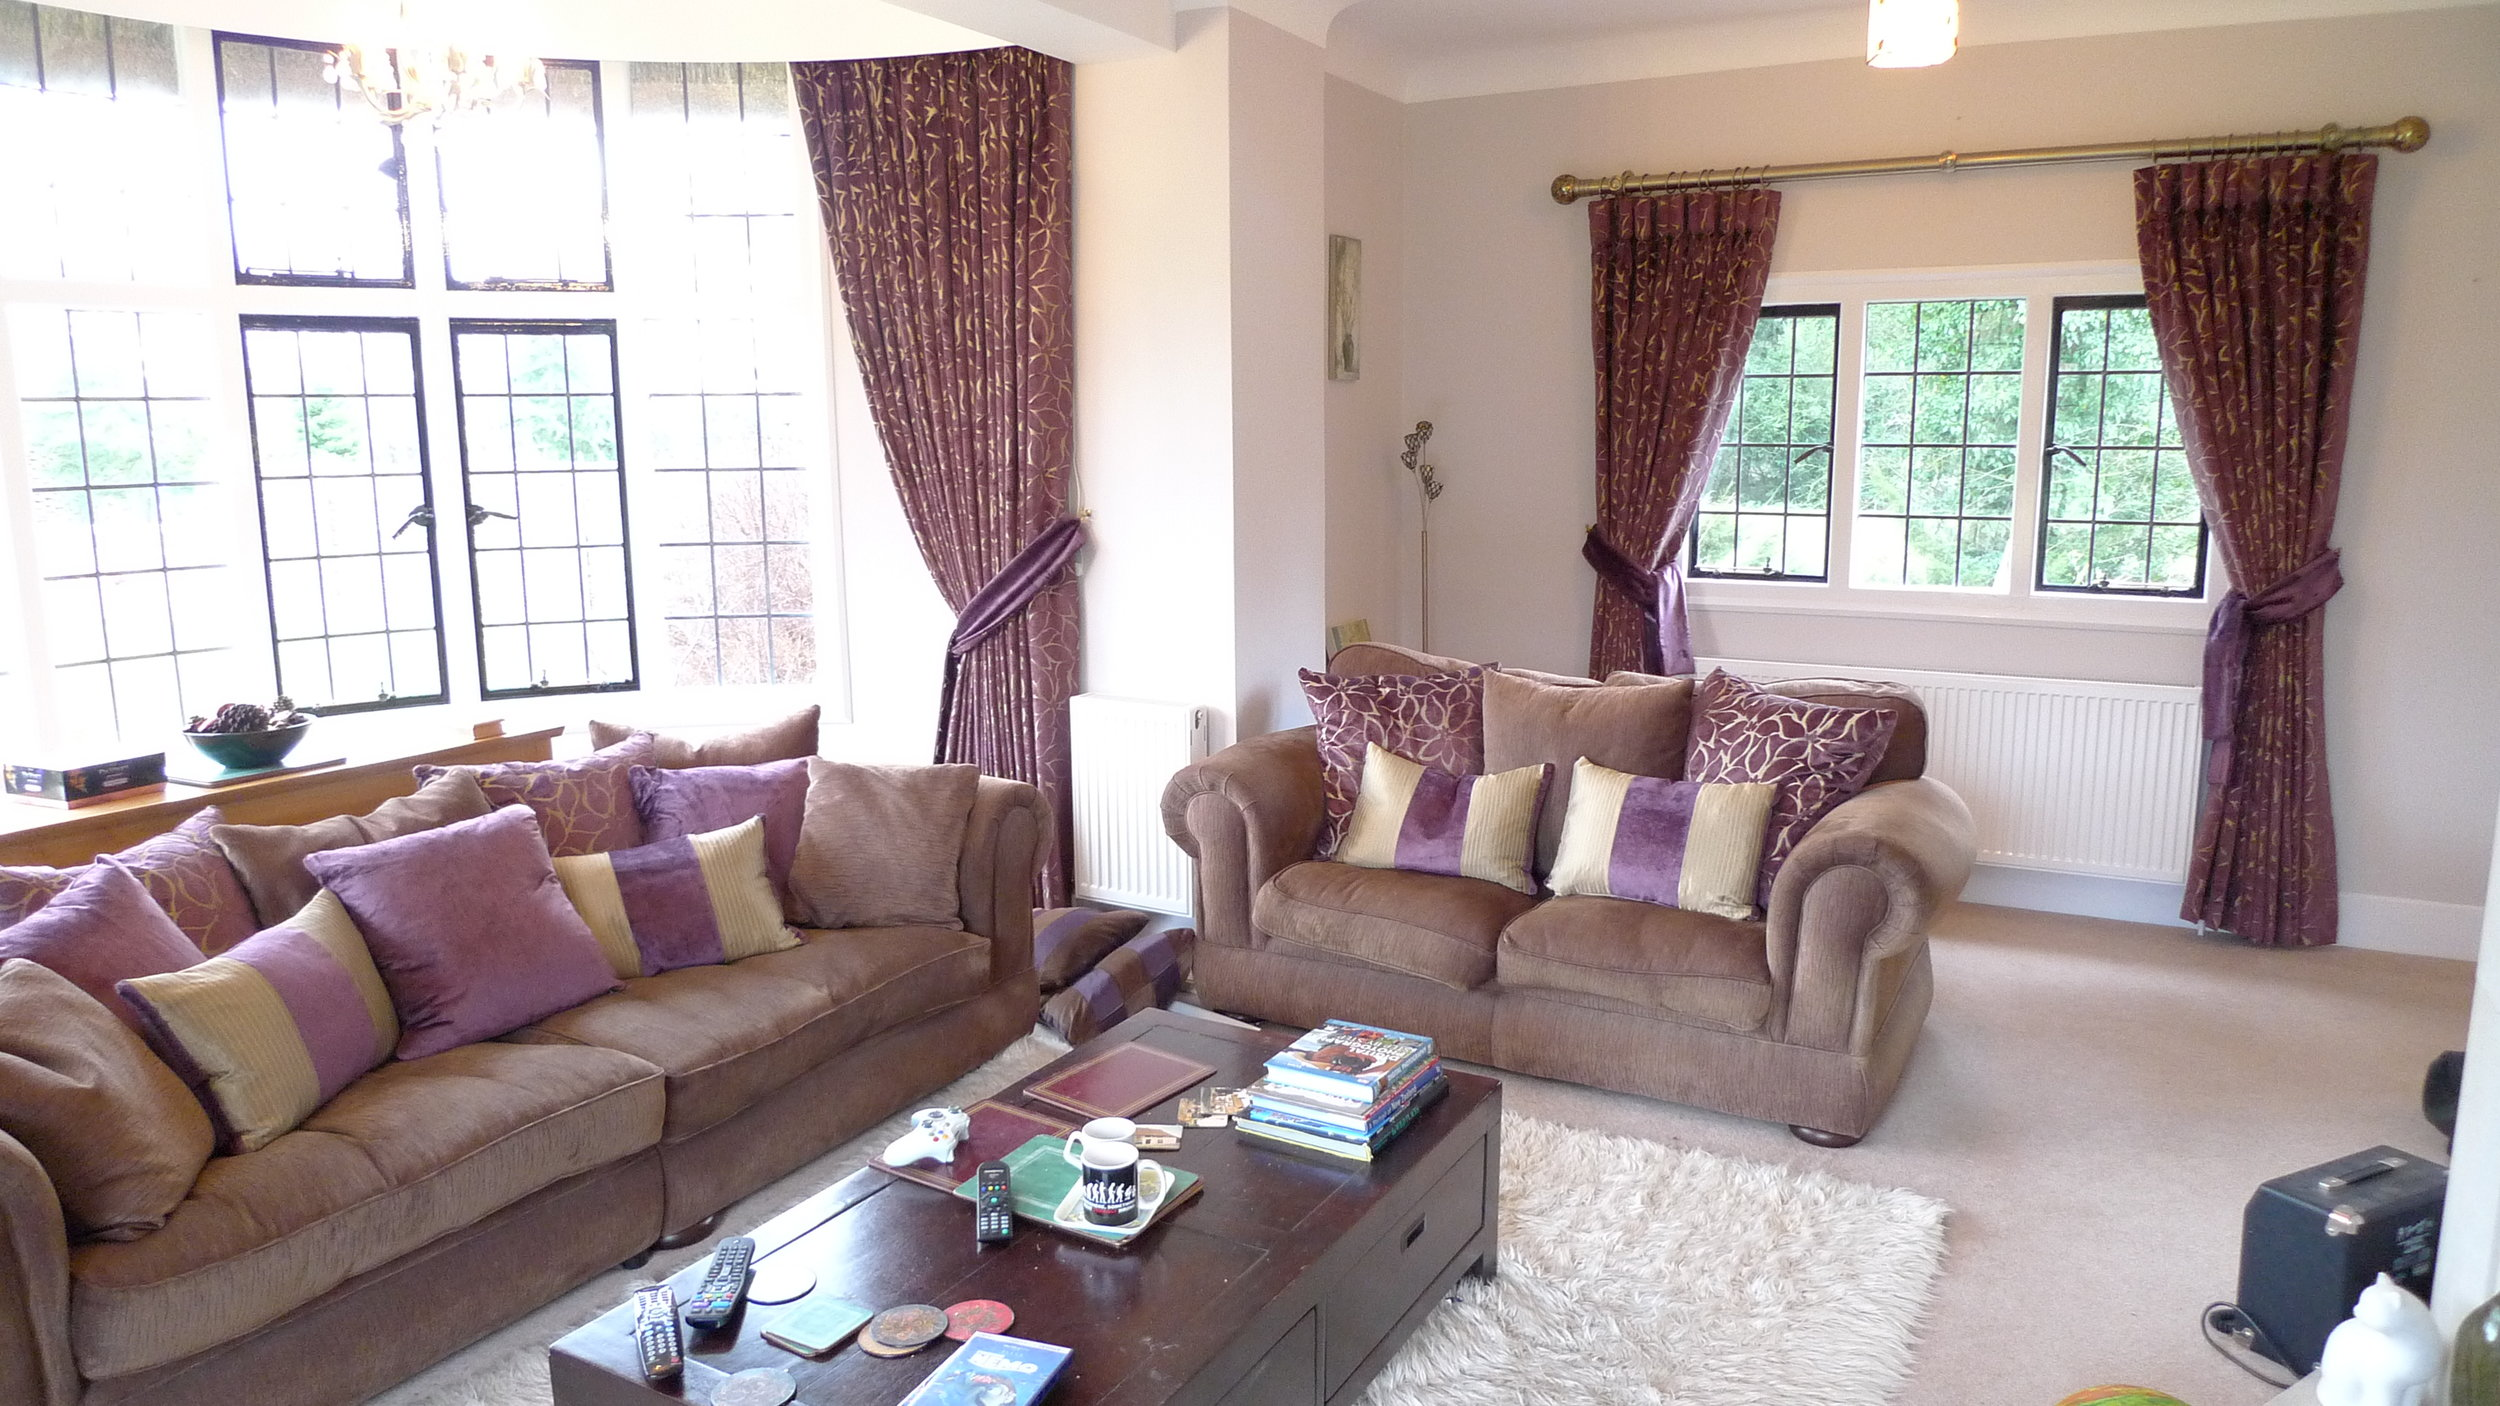 purple curtains and matching cushions in a living room